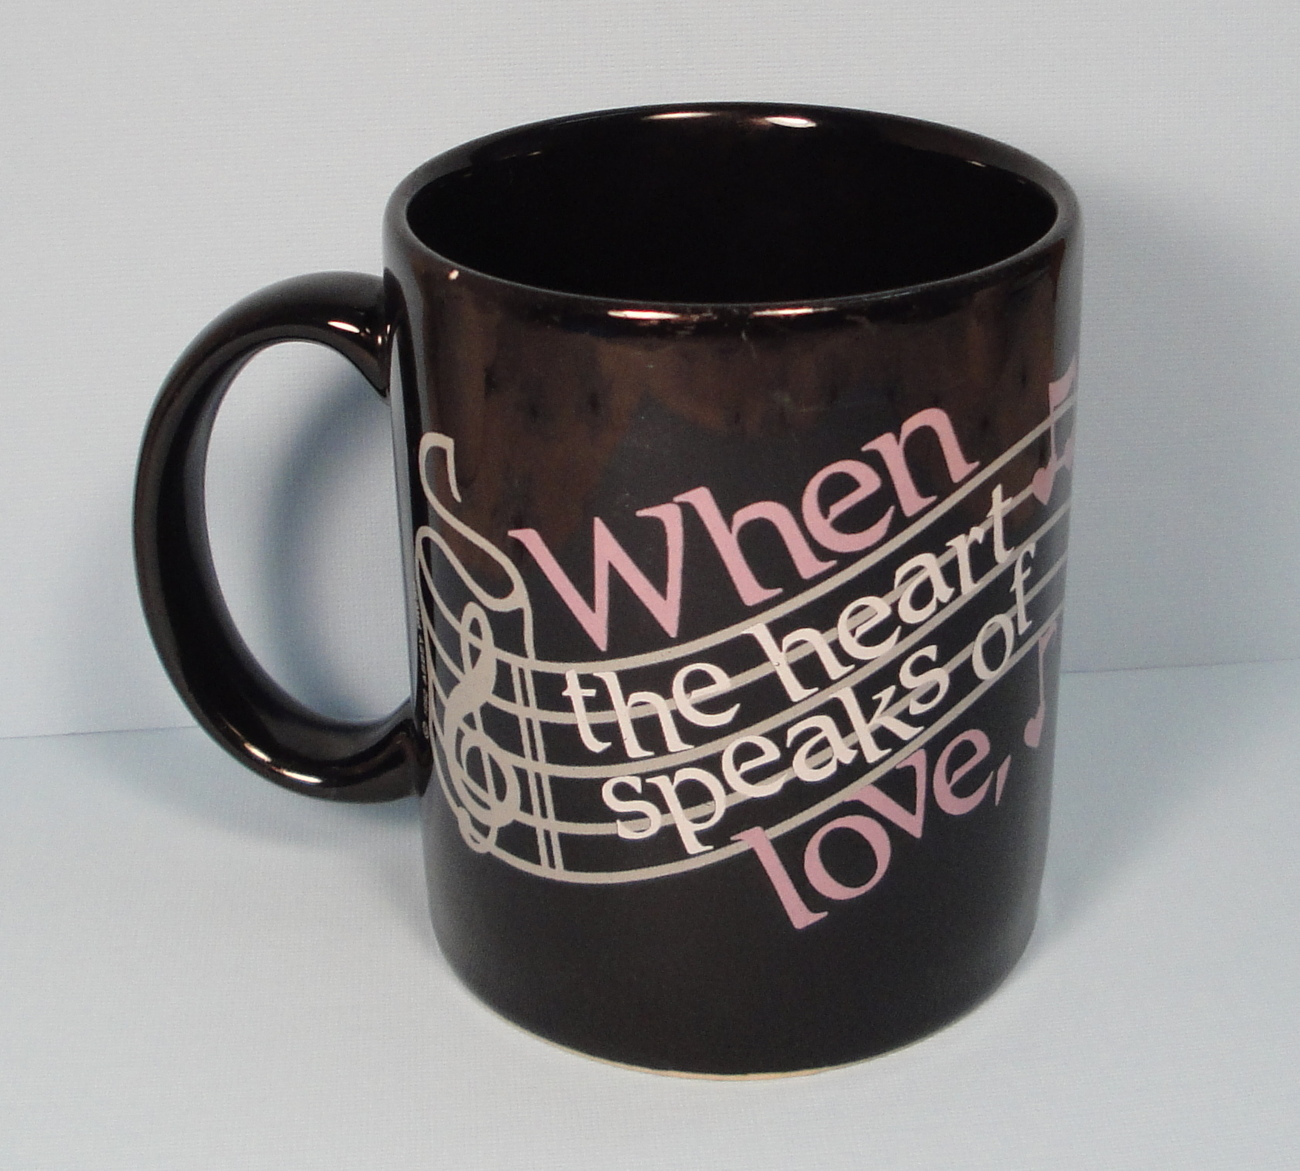 Valentine Coffee Mug Love Heart Music Notes 1992 Abbey Press